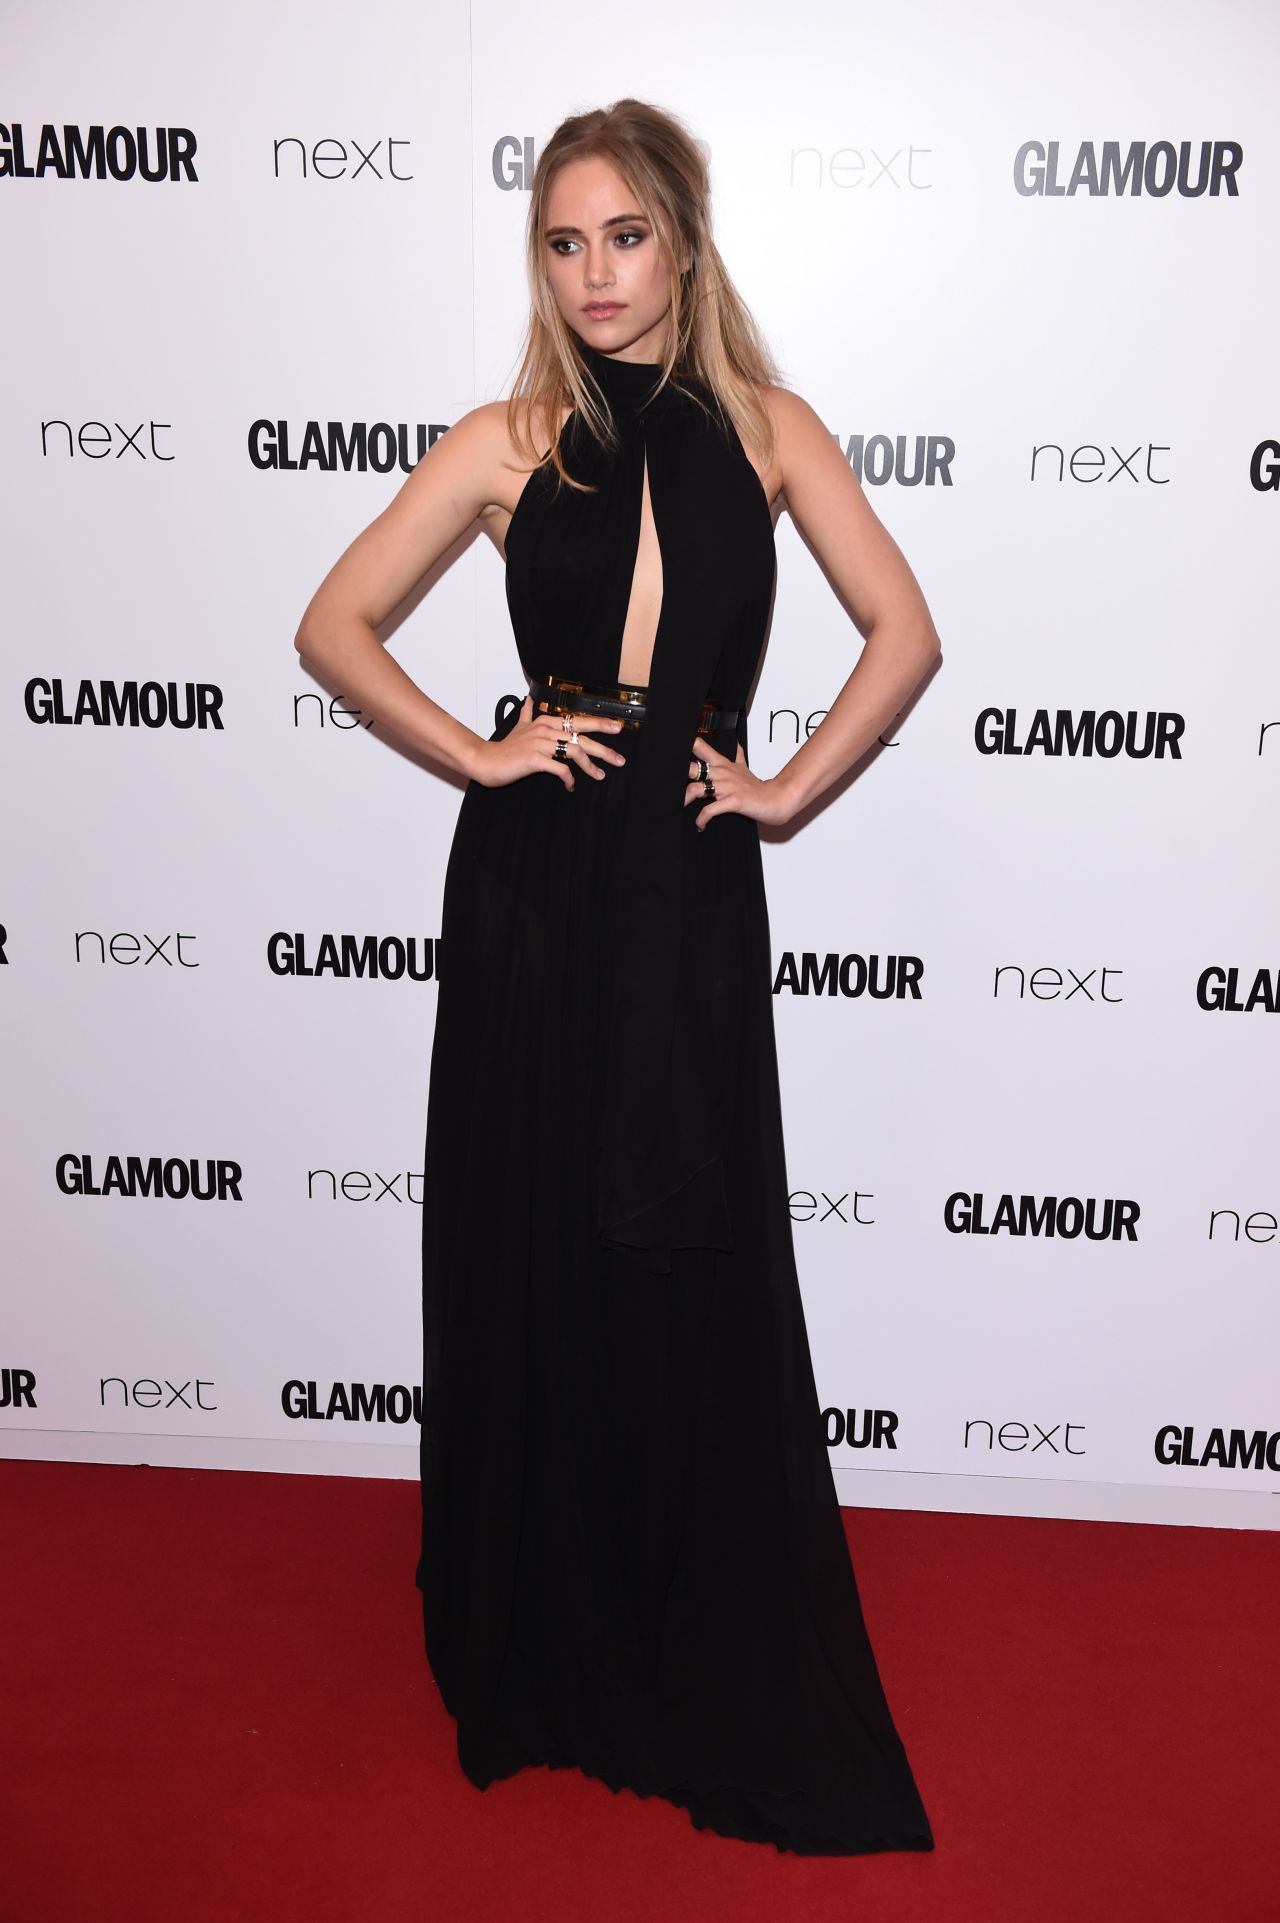 suki-waterhouse-2015-glamour-women-of-the-year-awards-in-london_7